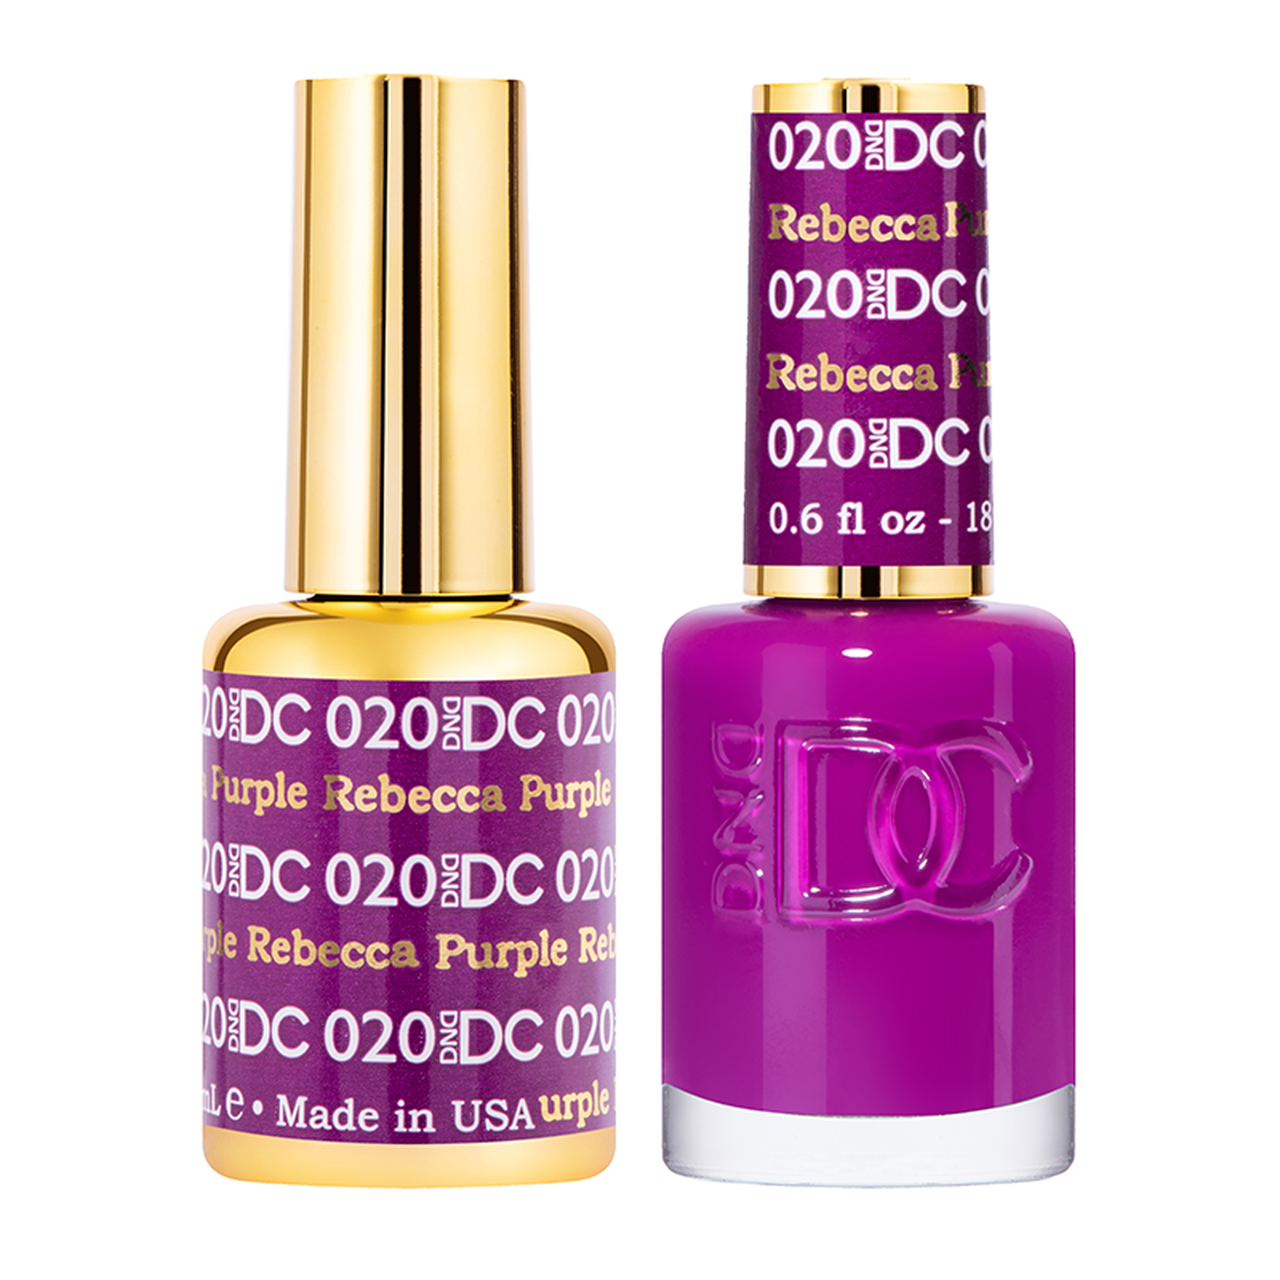 DND DC DUO GEL - #020 REBECCA PURPLE